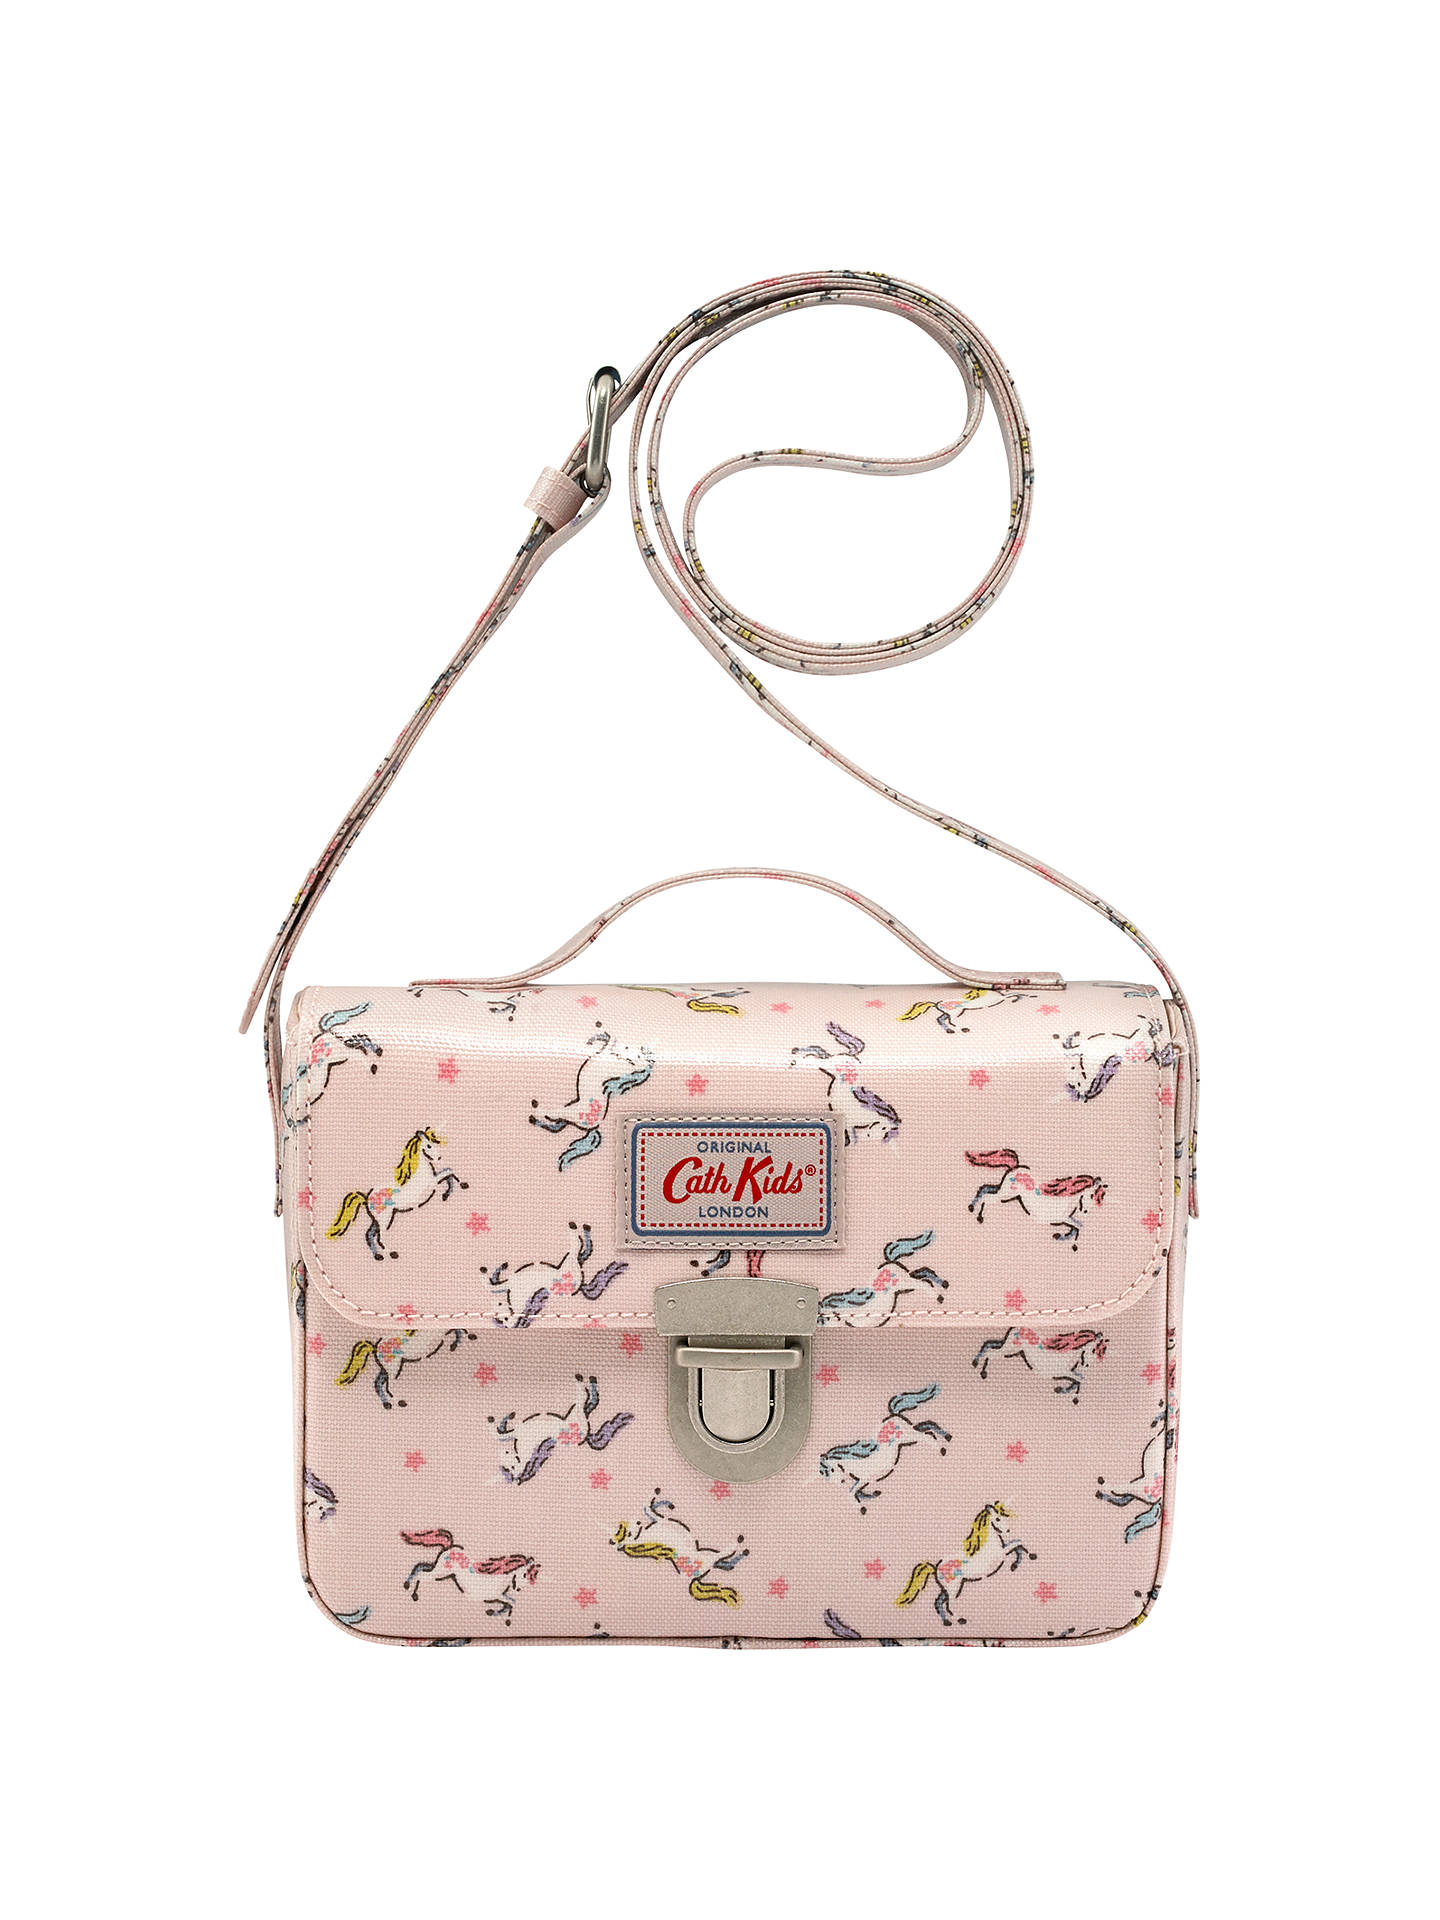 BuyCath Kids Children's Unicorn Ditsy Handbag, Pink Online at johnlewis.com